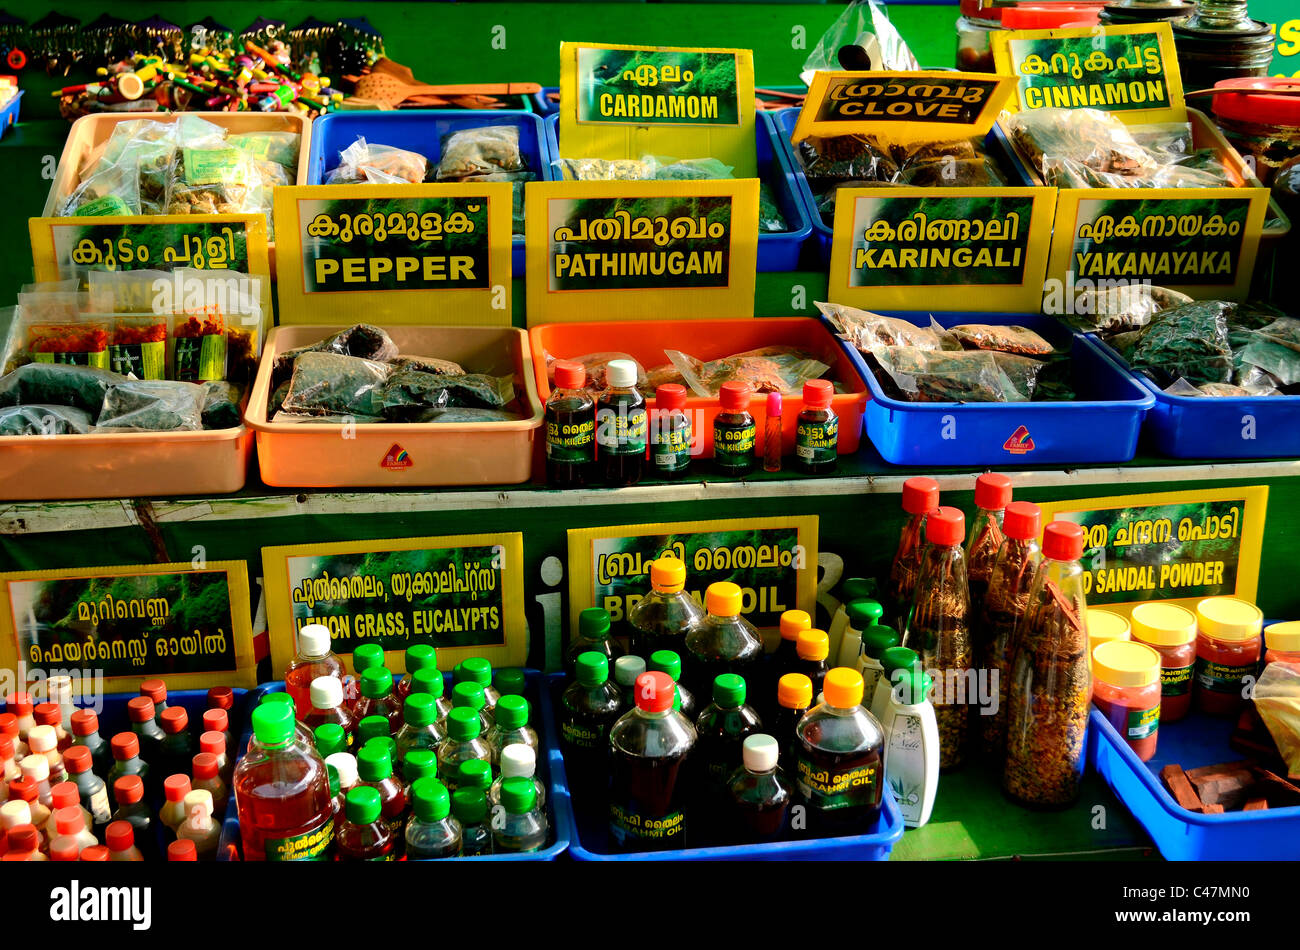 Condiments and ayurveda medicines on sale in a stall in kerala - Stock Image